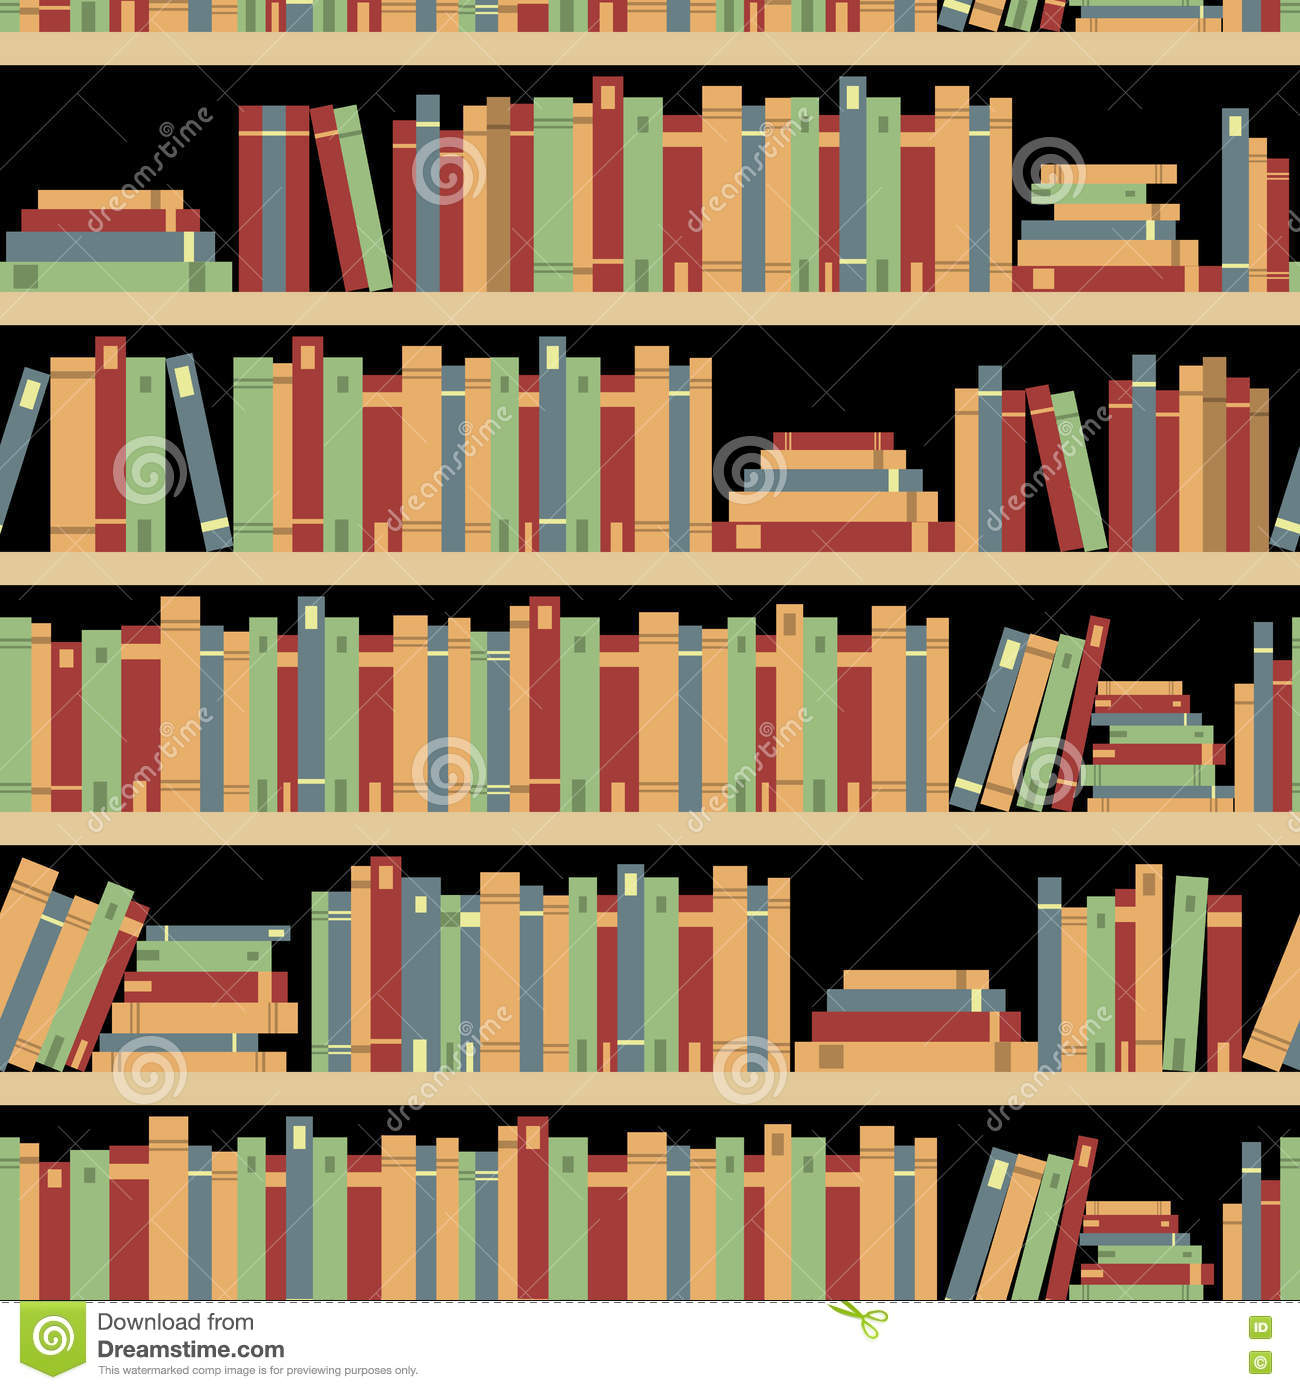 bibliography of book Bibliography, also known as works cited, reference list is basically an orderly study and referencing of books and source materials used in academic research.